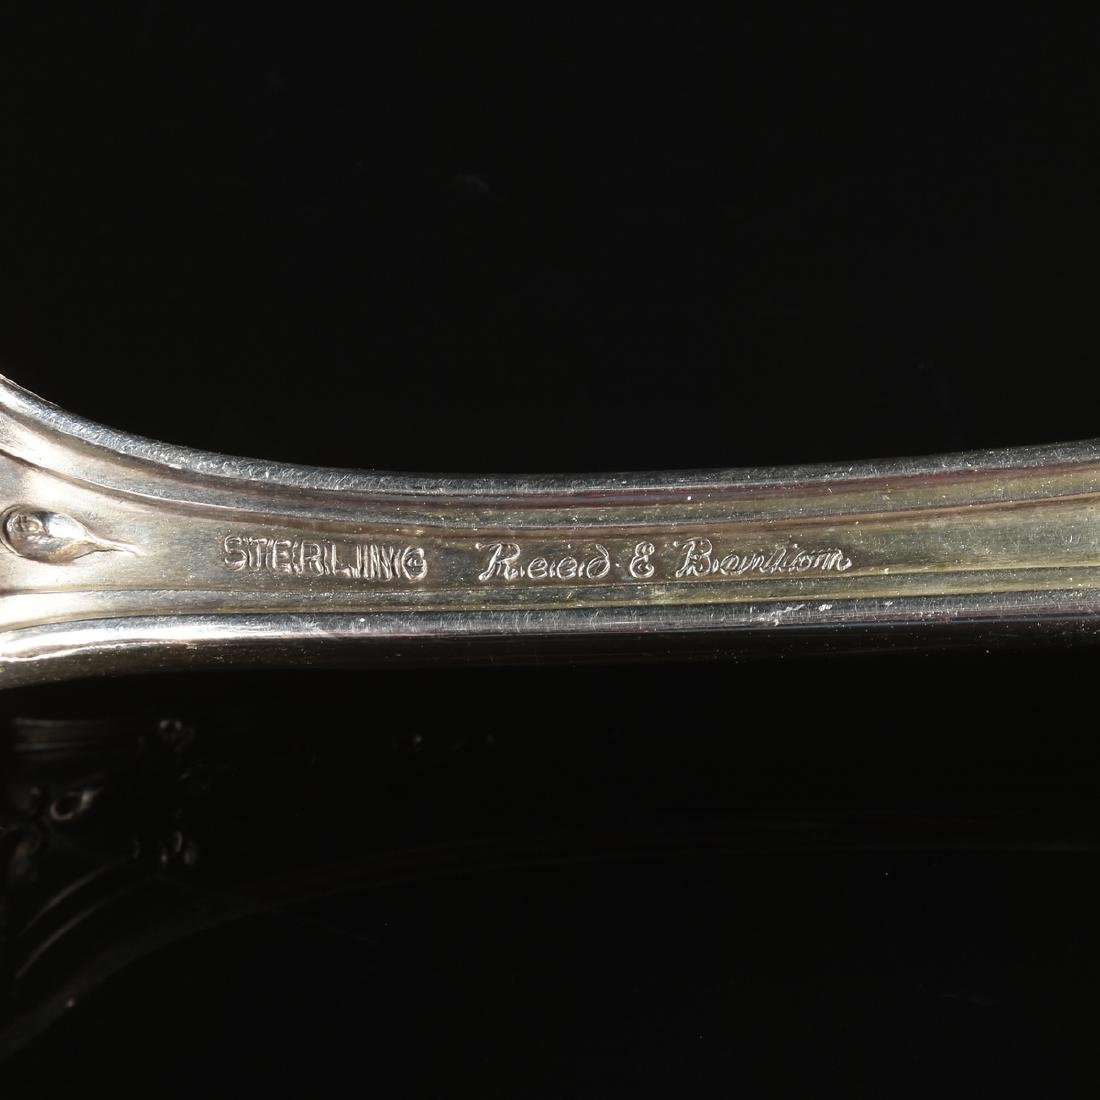 A GROUP OF SEVEN REED & BARTON STERLING SILVER SERVING - 9